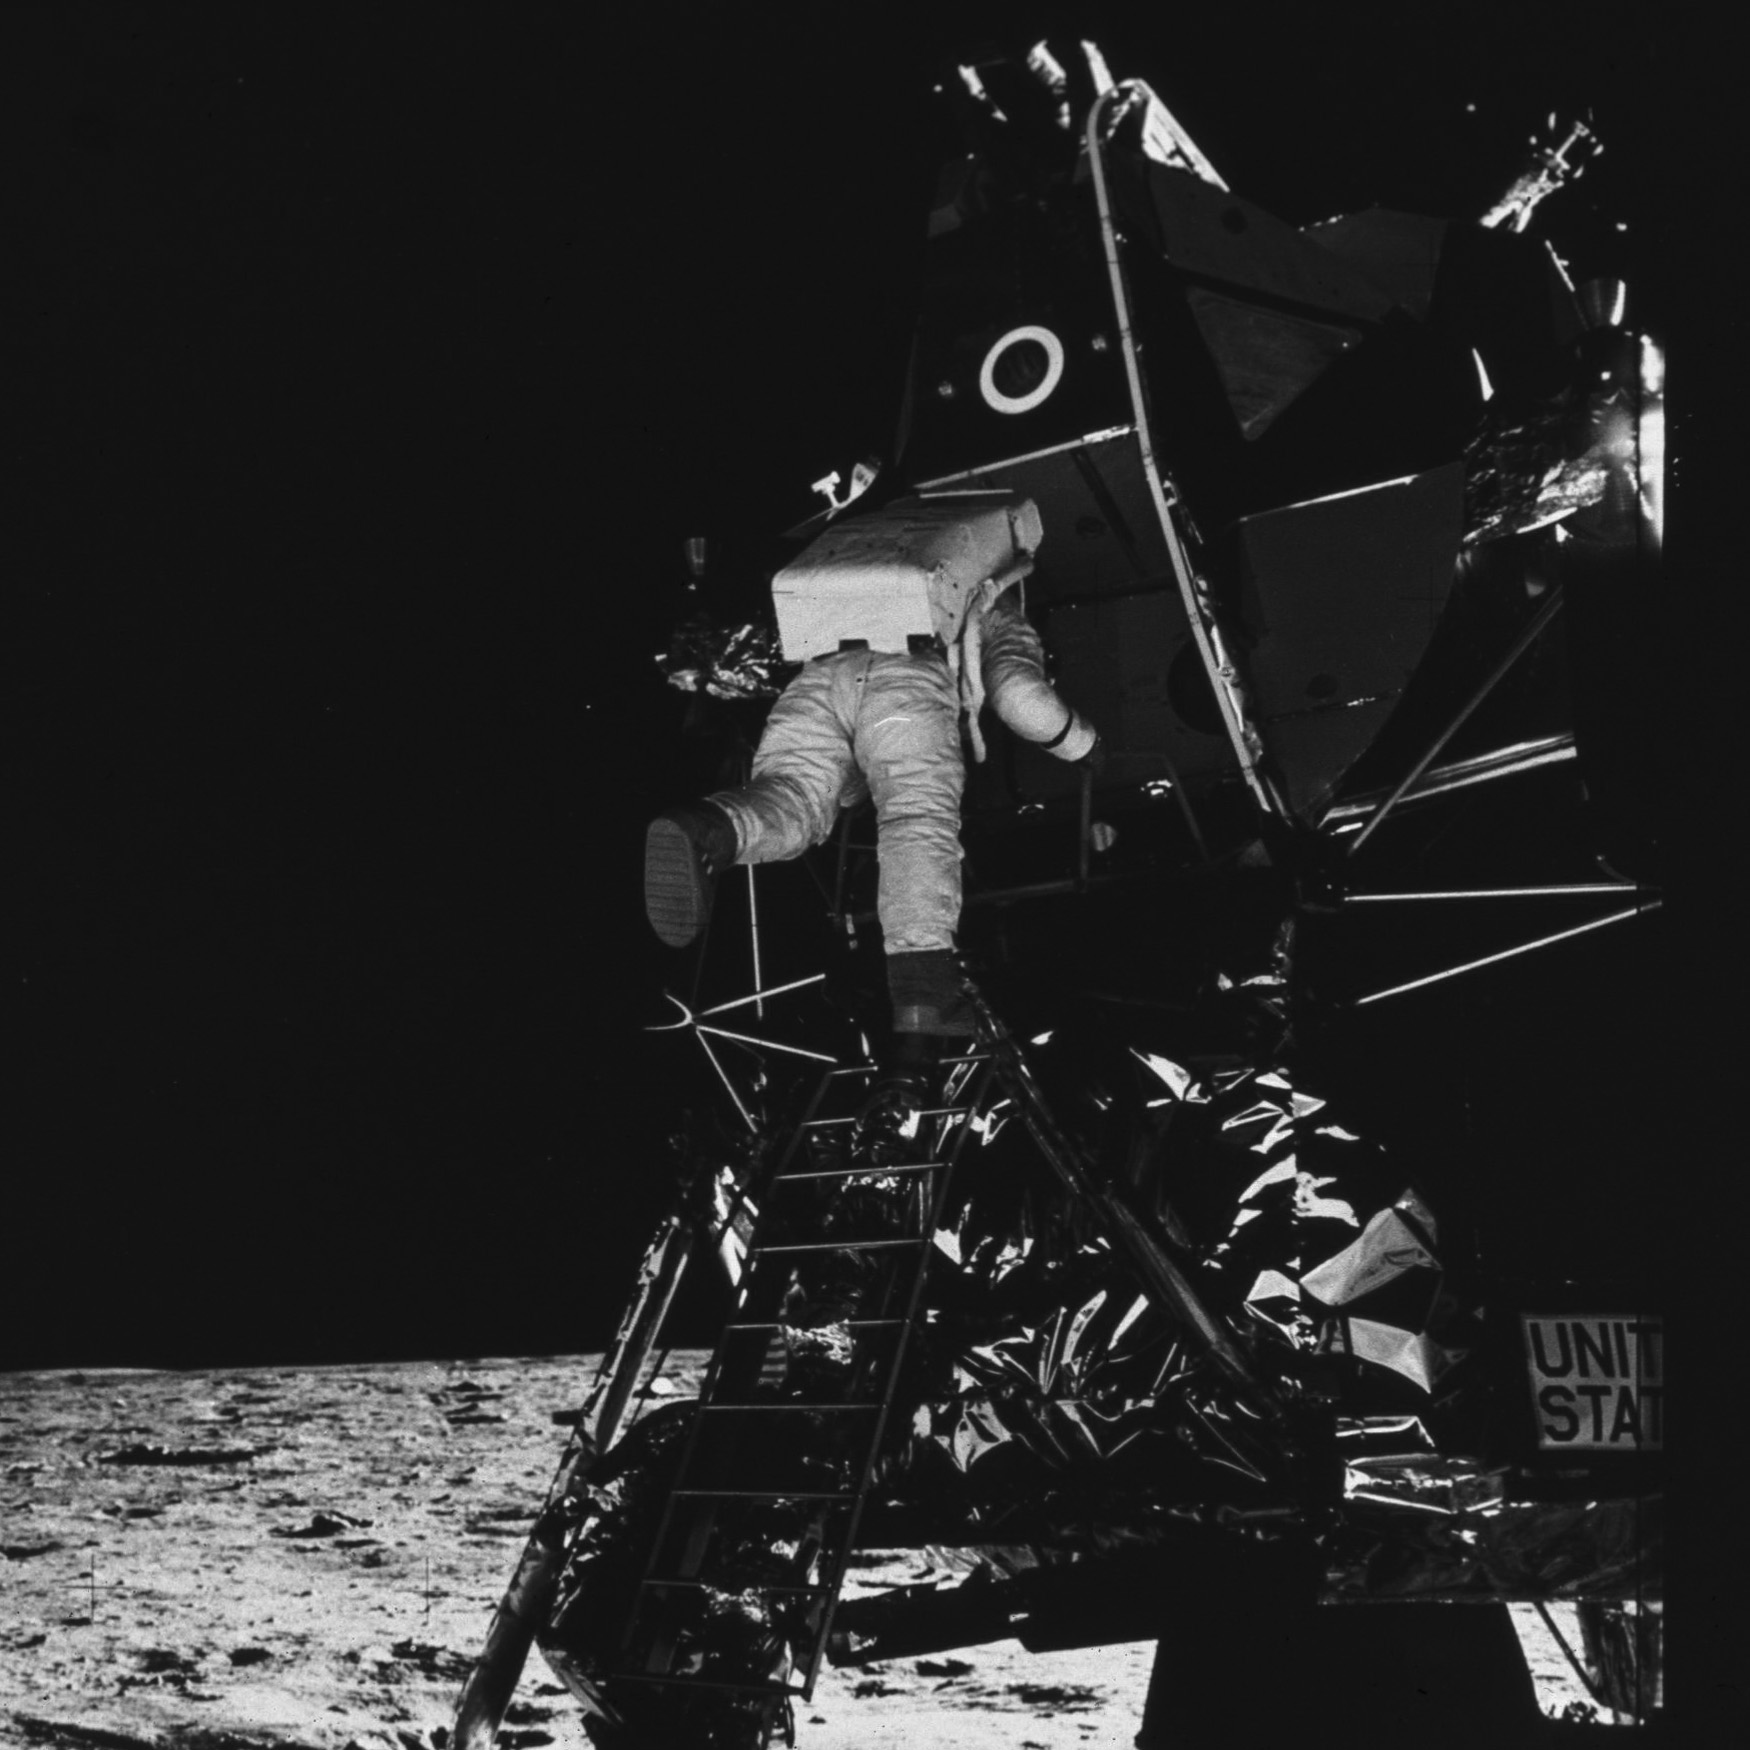 nasa apollo history - photo #42